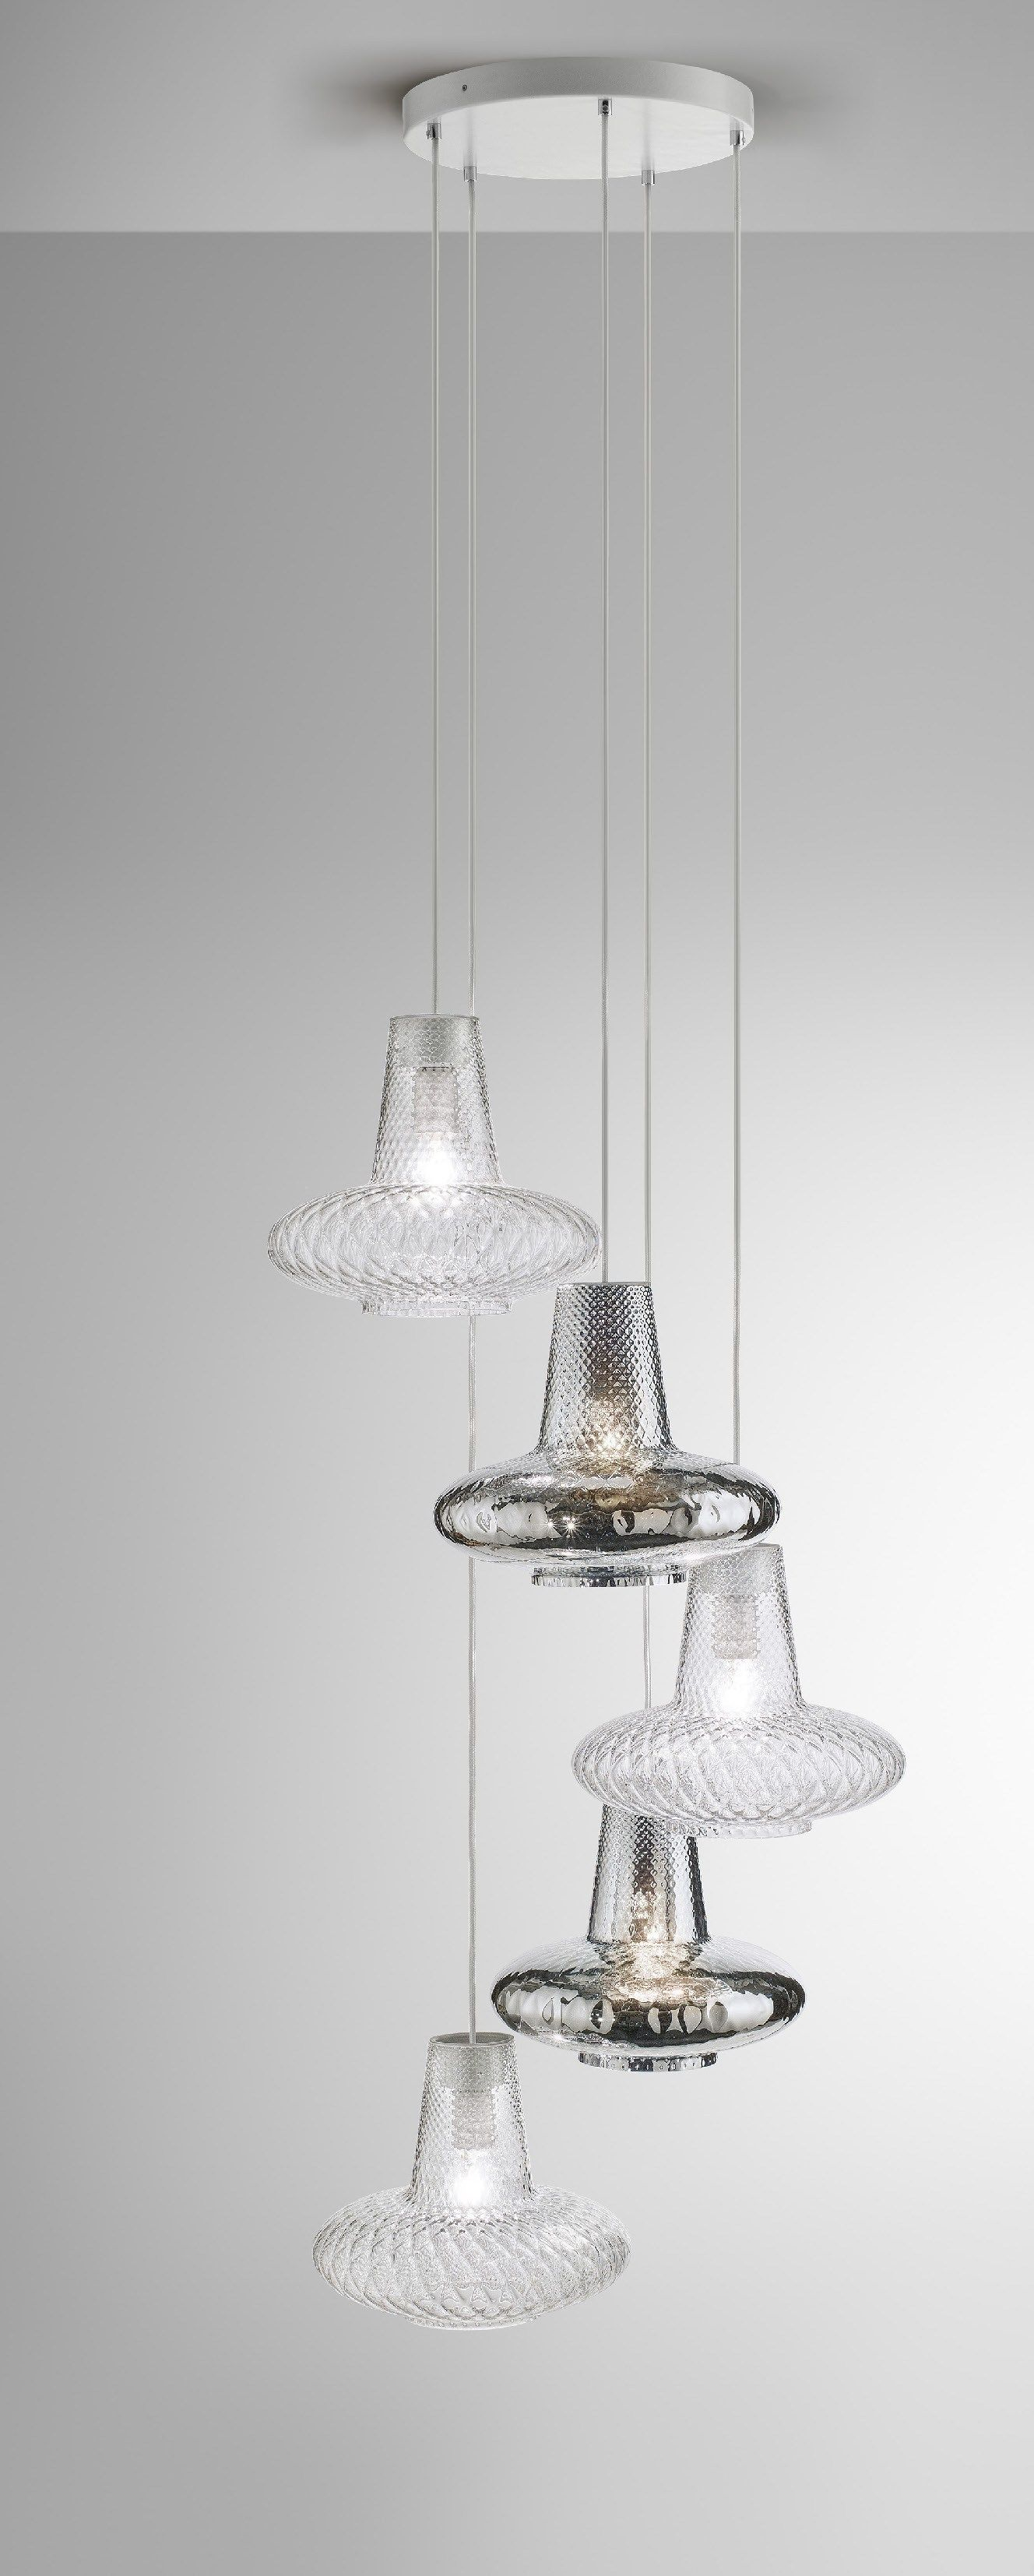 pendants dering contemporary pendant lighting glass coppa optic hall hammerton blown metal